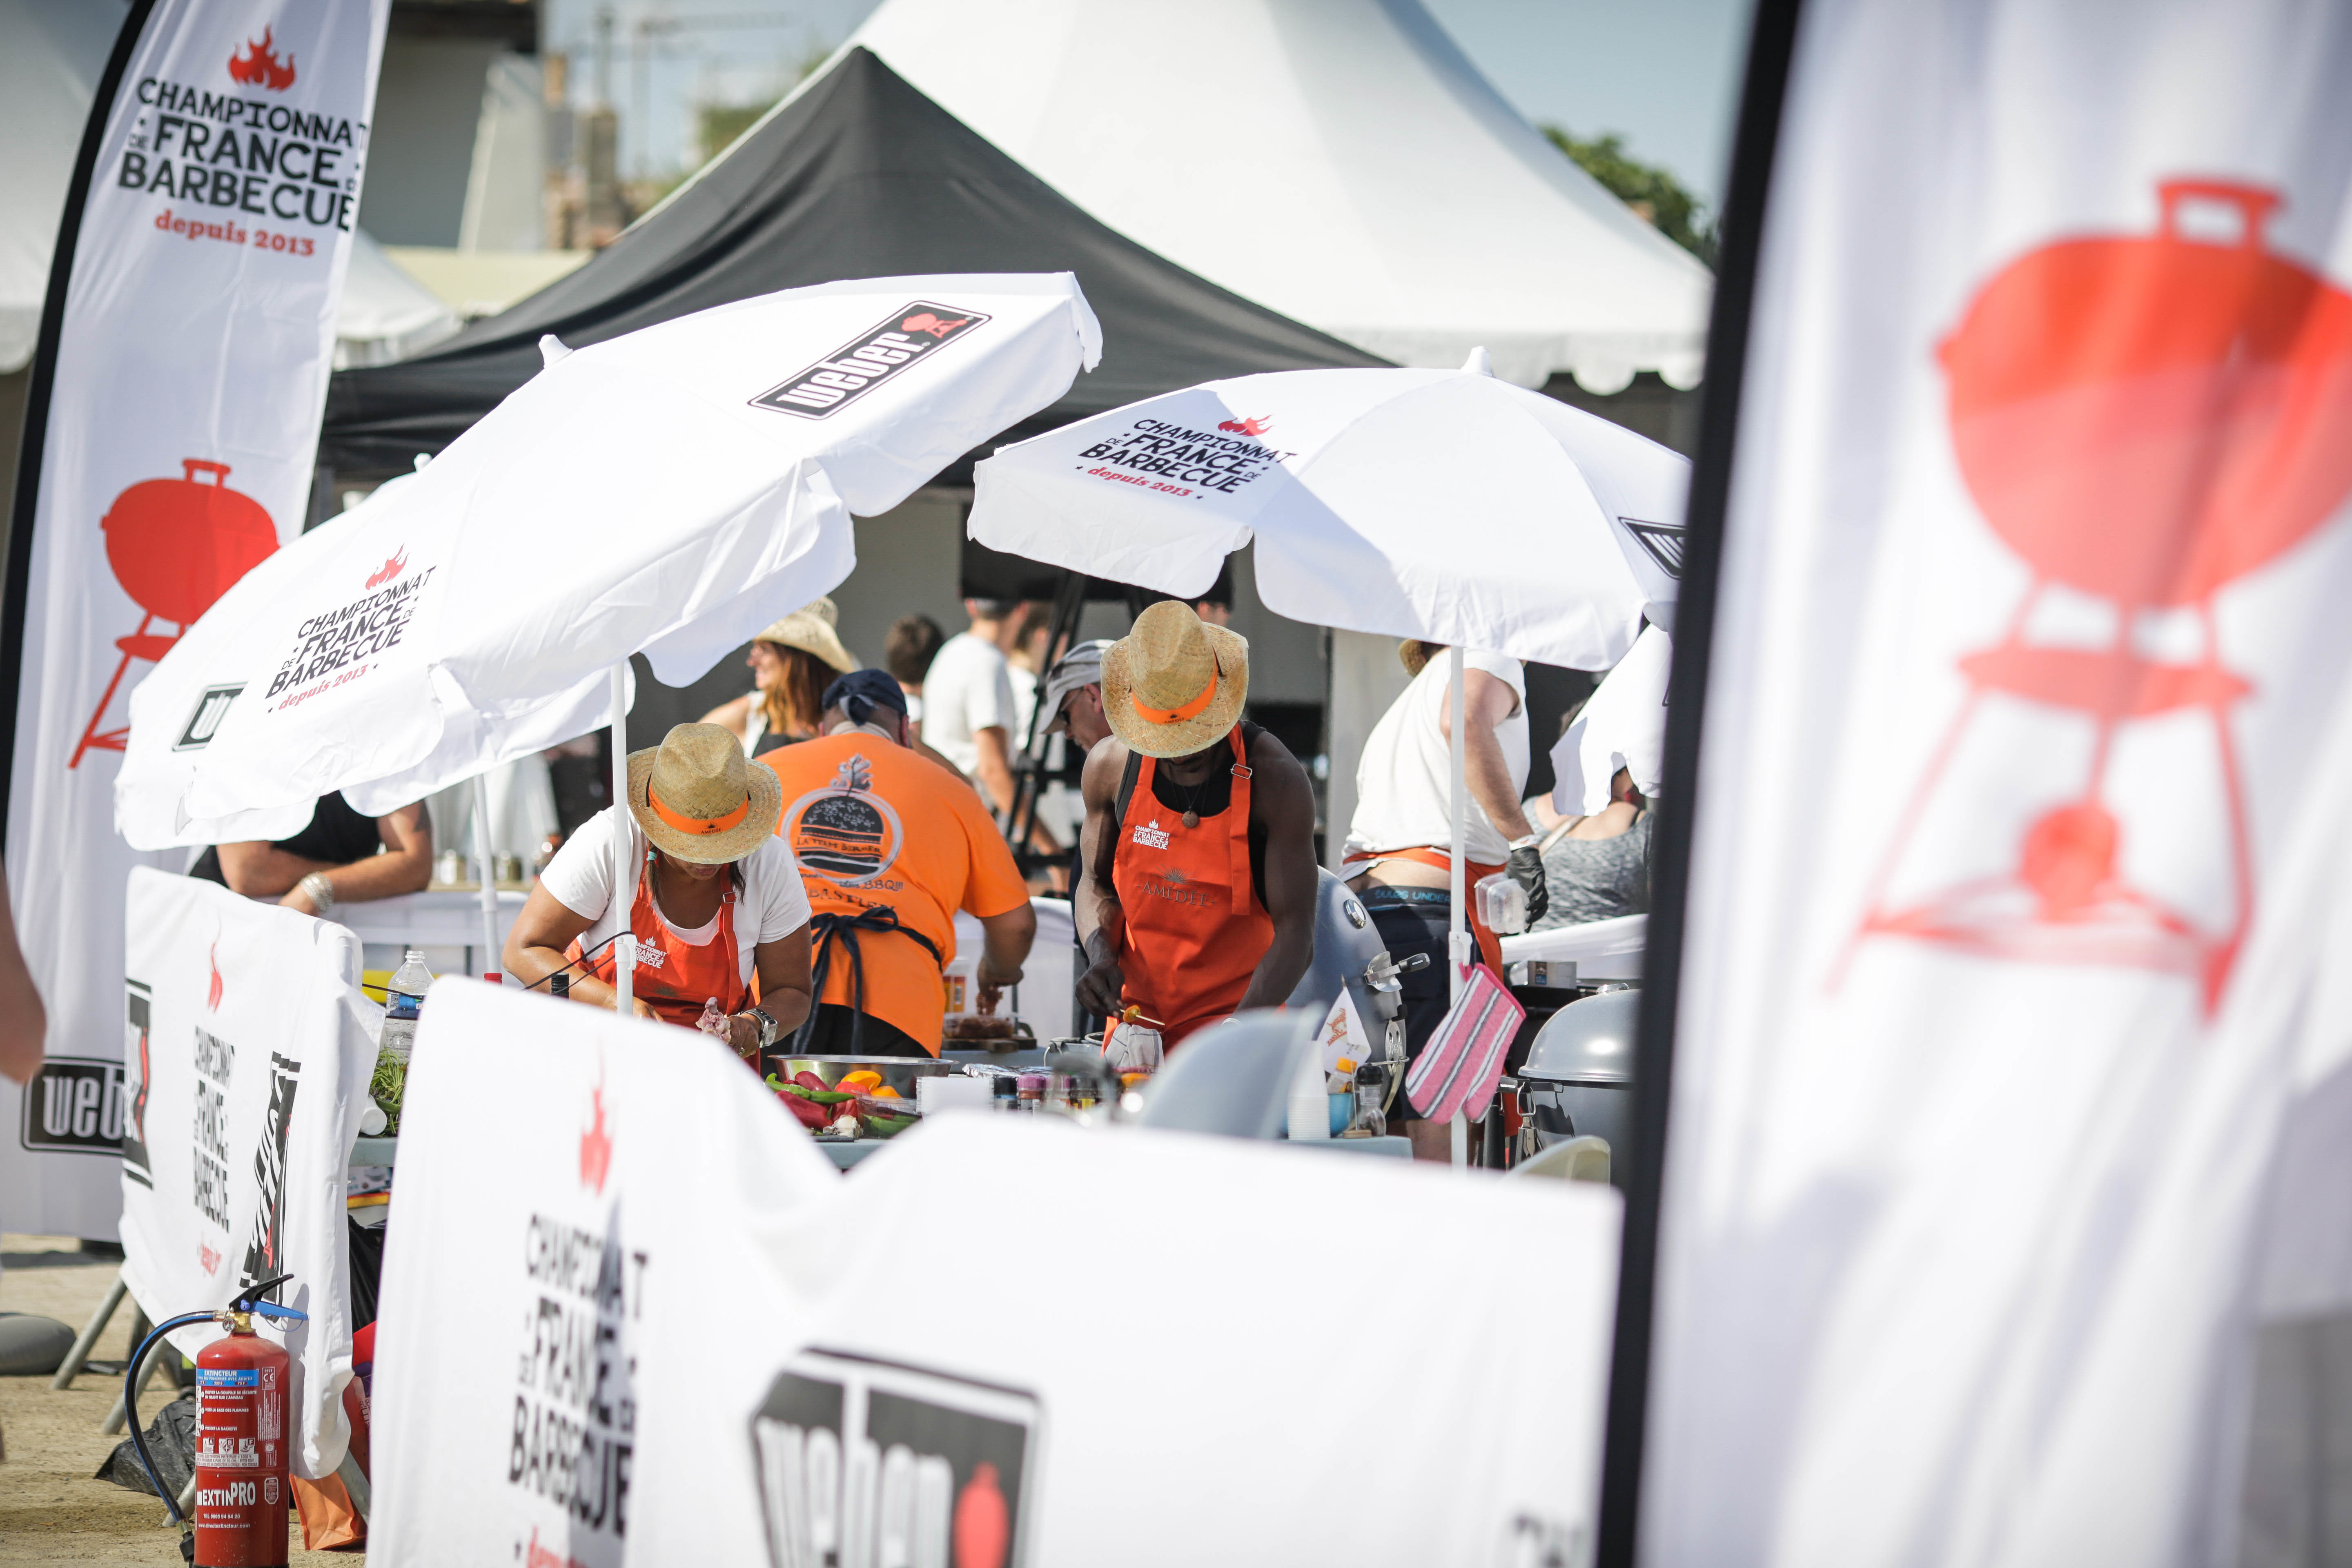 Championnat Barbecue2016 249